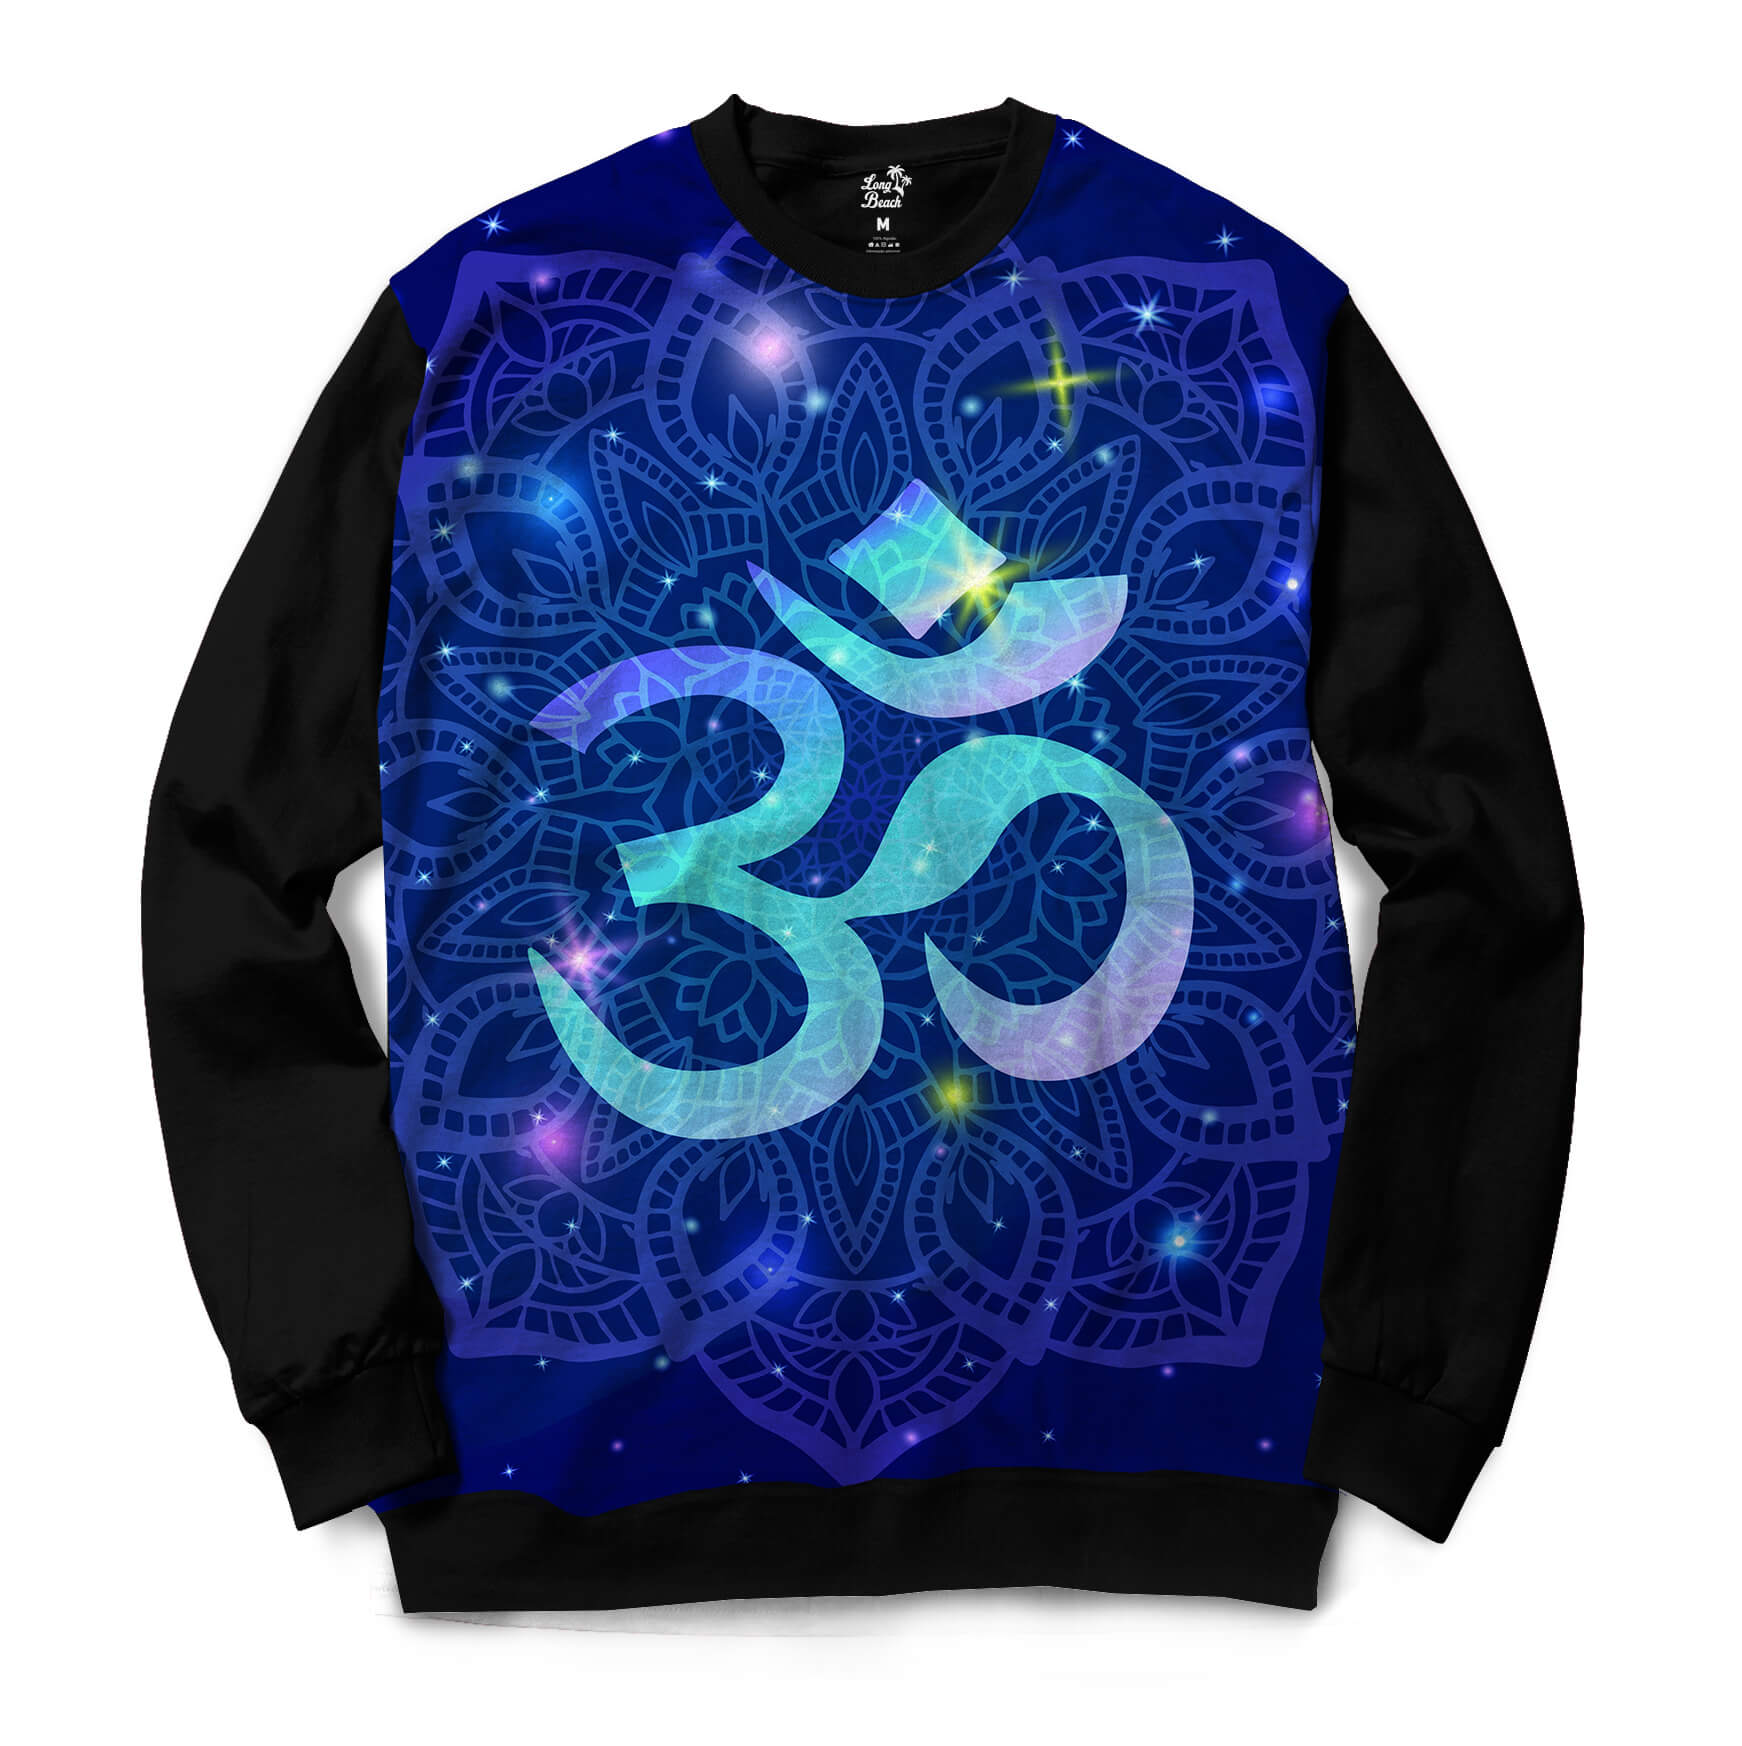 Moletom Gola Careca Long Beach Ohm Mandala Florida Full Print Azul